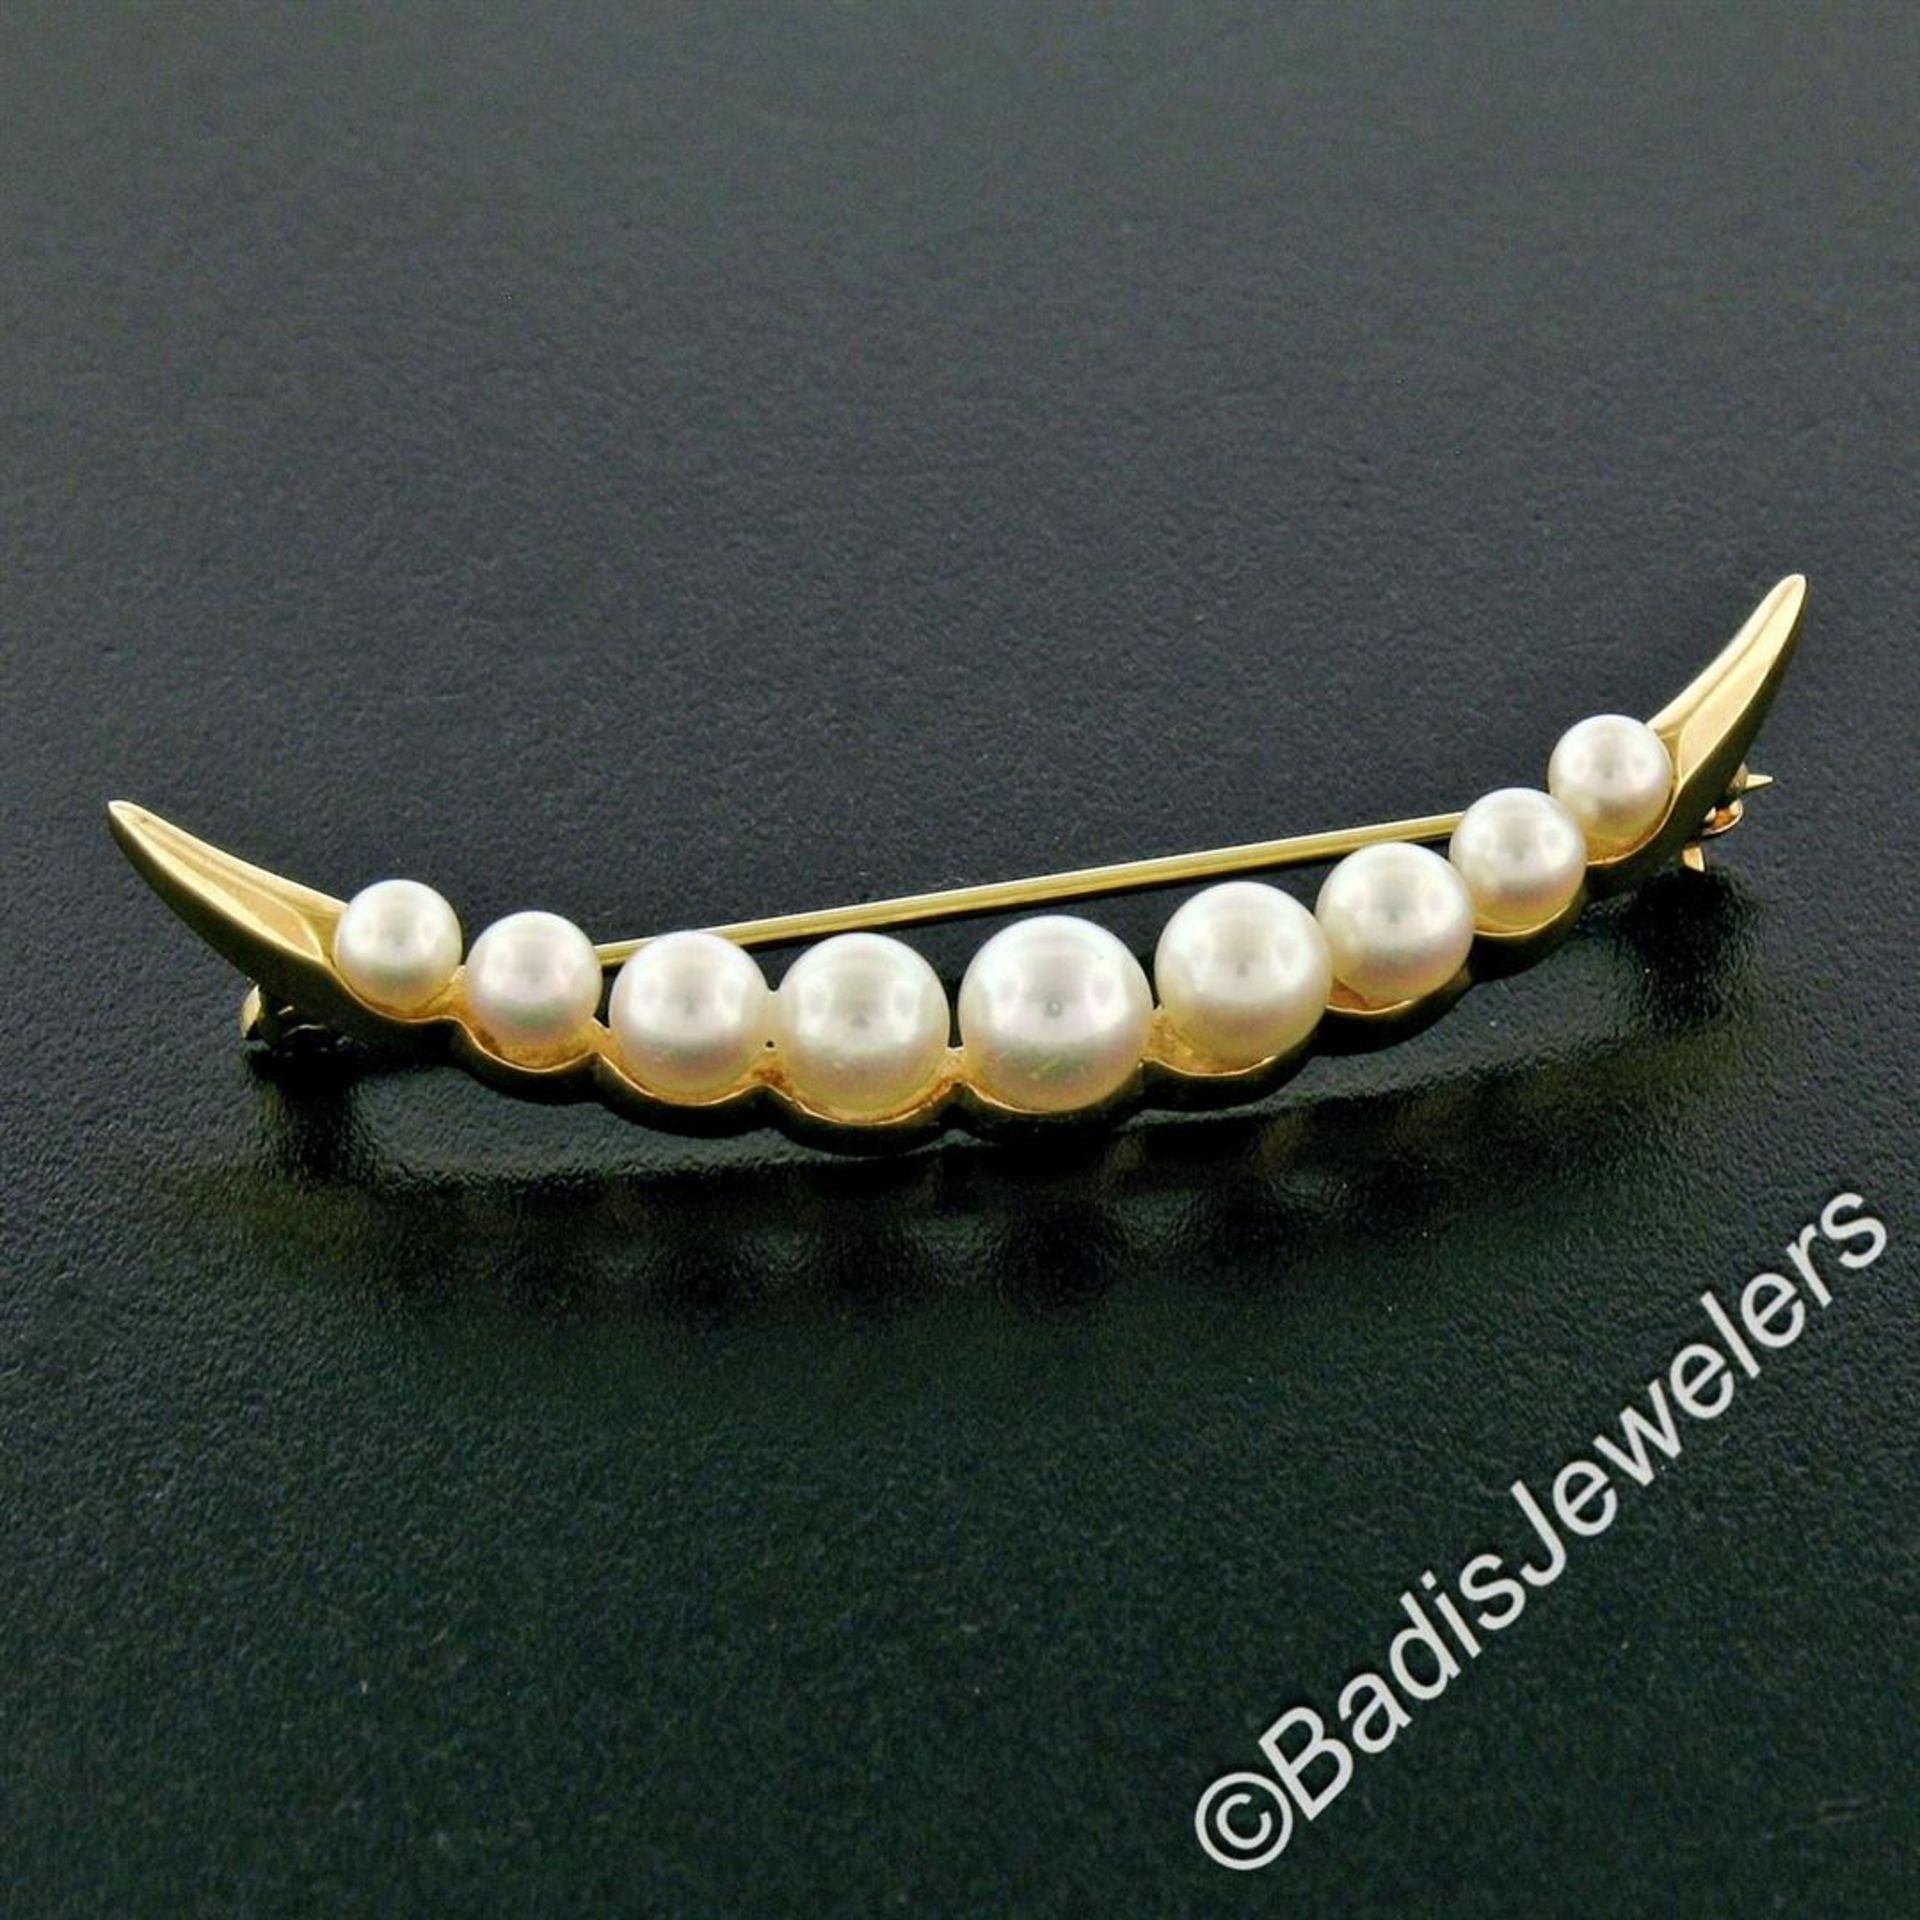 14kt Yellow Gold Graduated Round Cultured Pearl Polished Crescent Brooch - Image 2 of 6